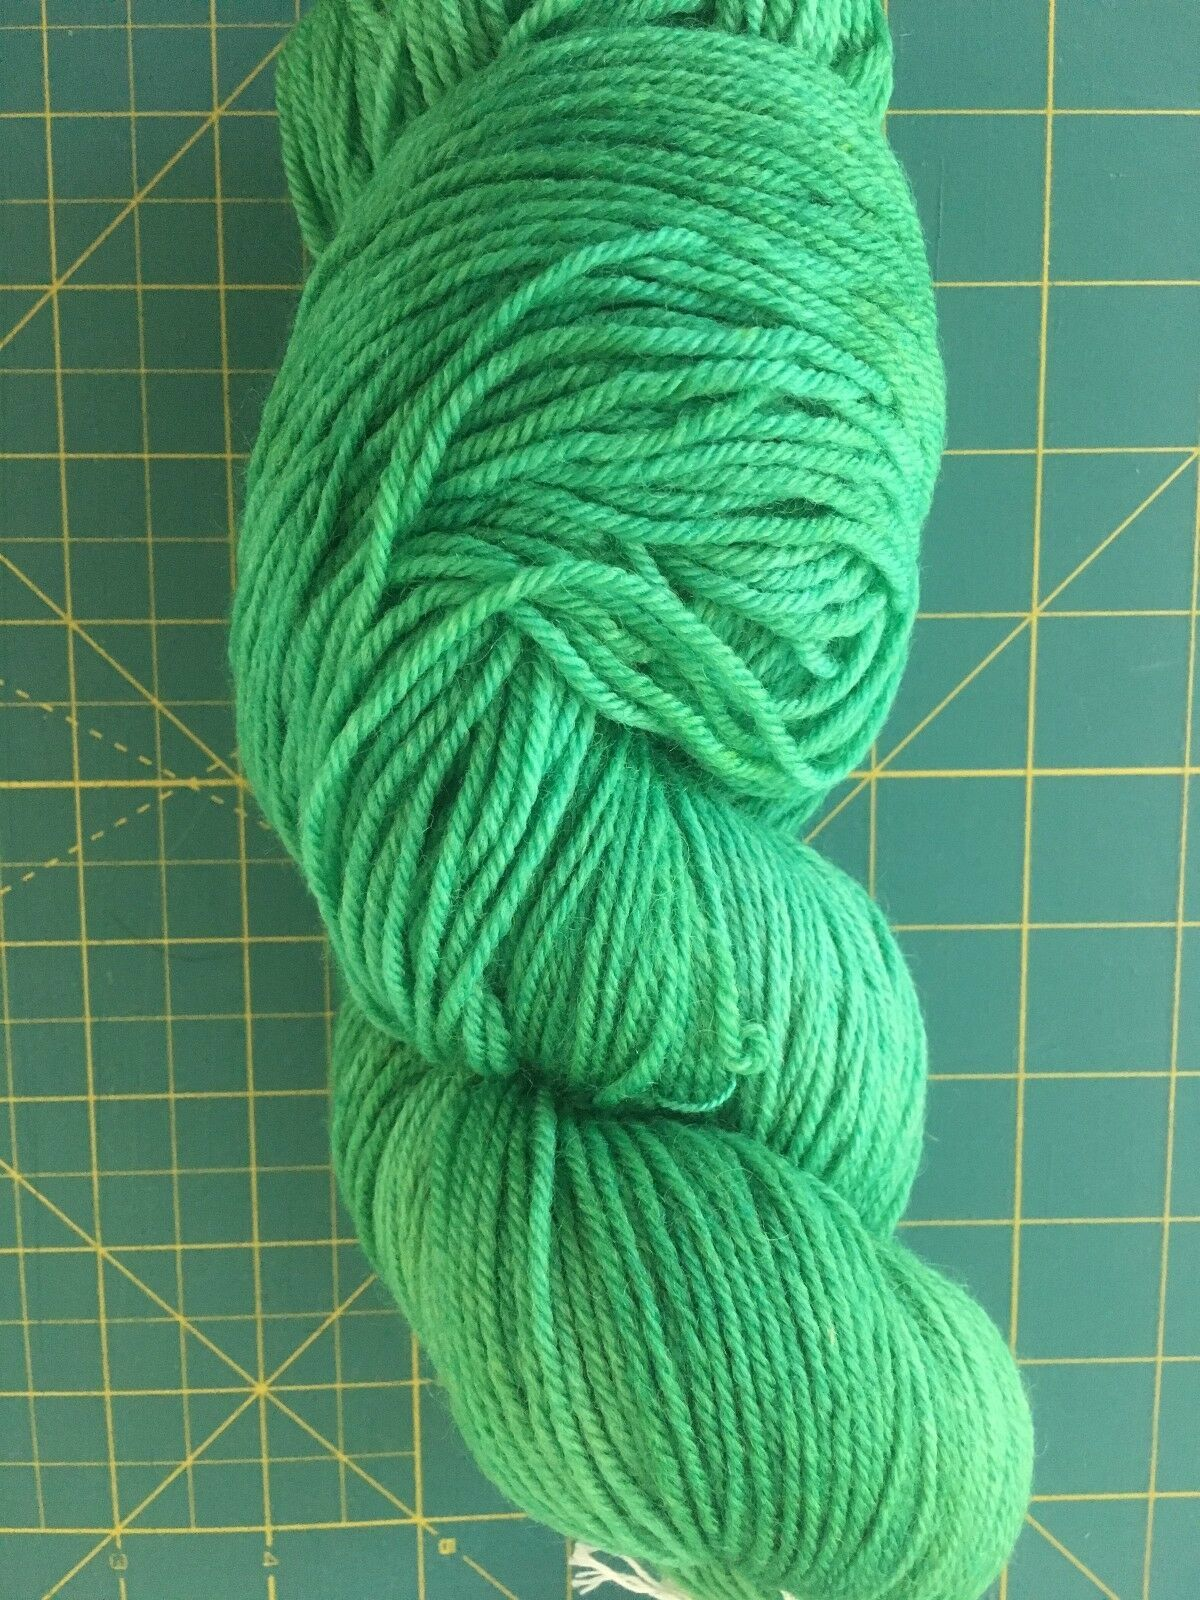 Hand Dyed Sport Weight Wool yarn by Color Creations - Color Emerald - 100gr hank - $5.58